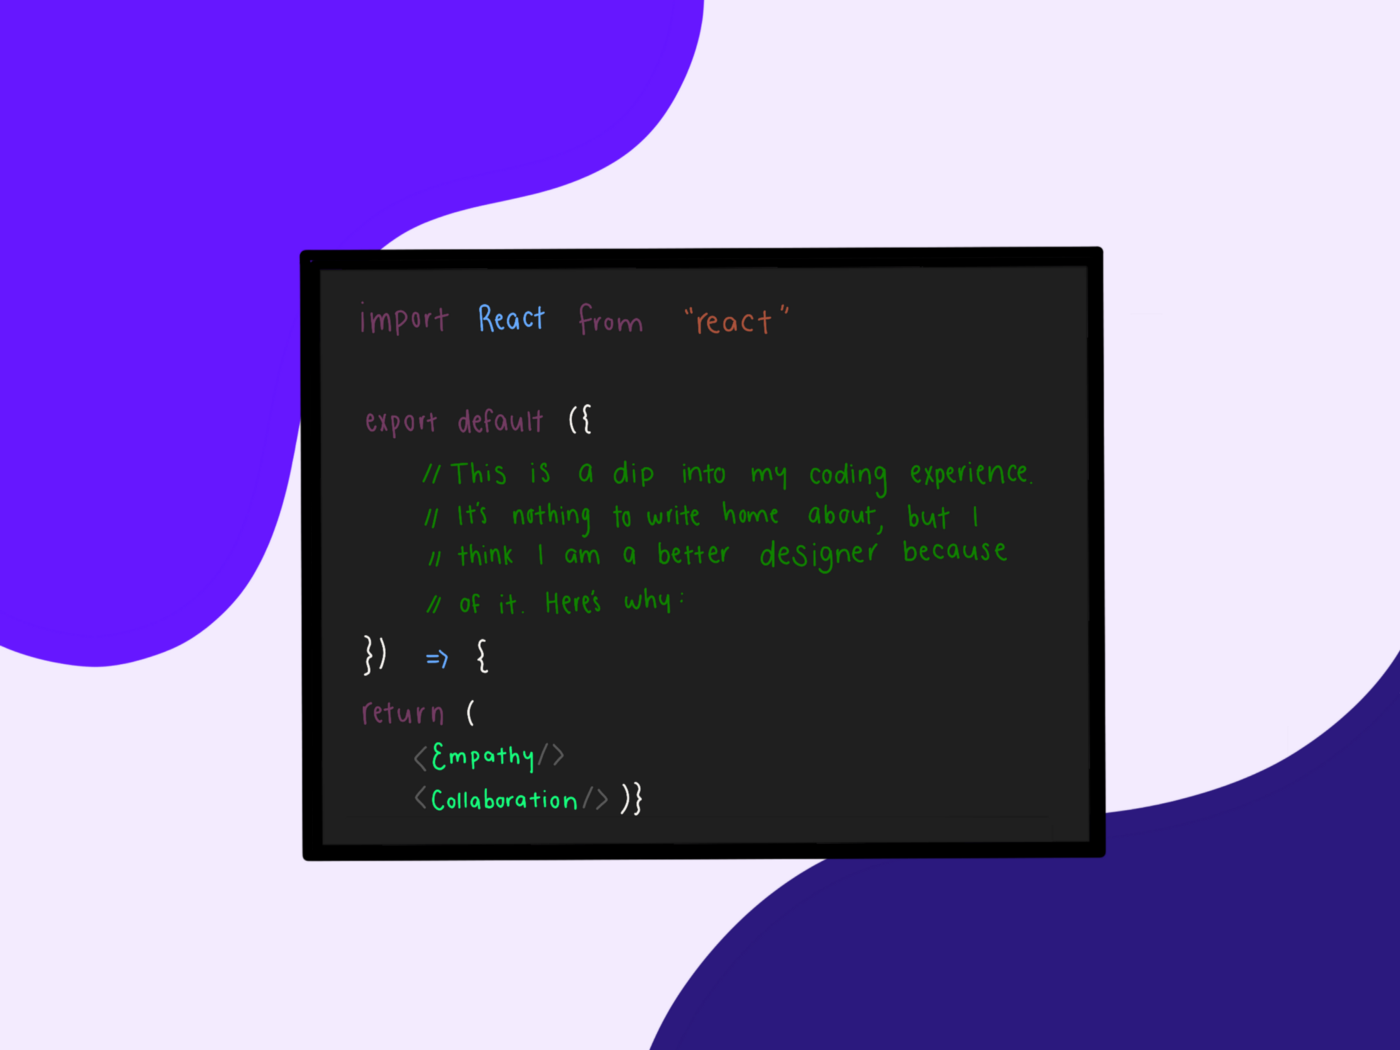 Here's a dip into my coding experience. It's nothing to write home about, but it has taught me empathy and collaboration.